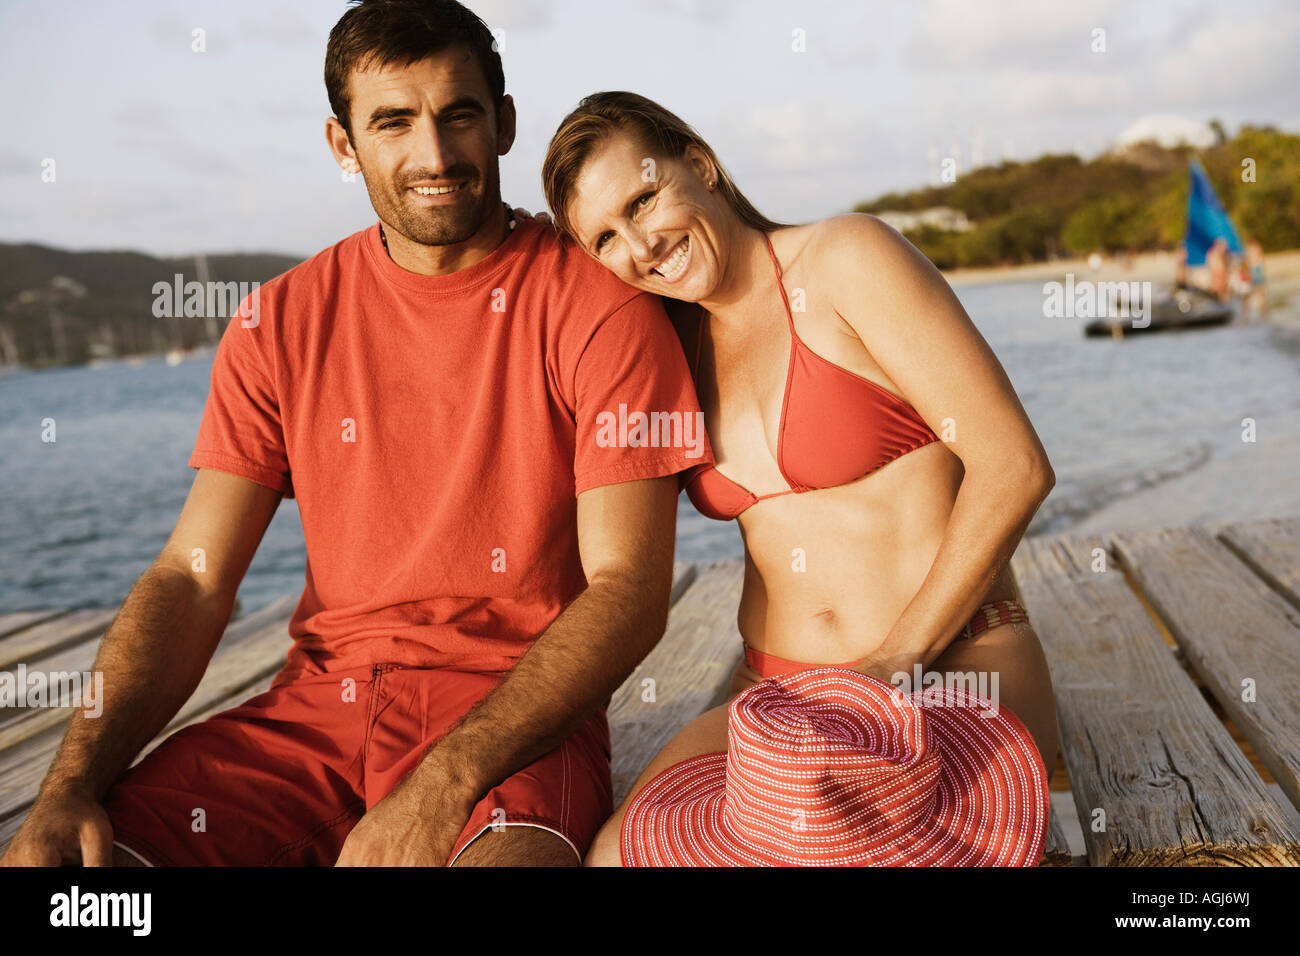 Portrait of a mid adult couple sitting on a pier and smiling - Stock Image